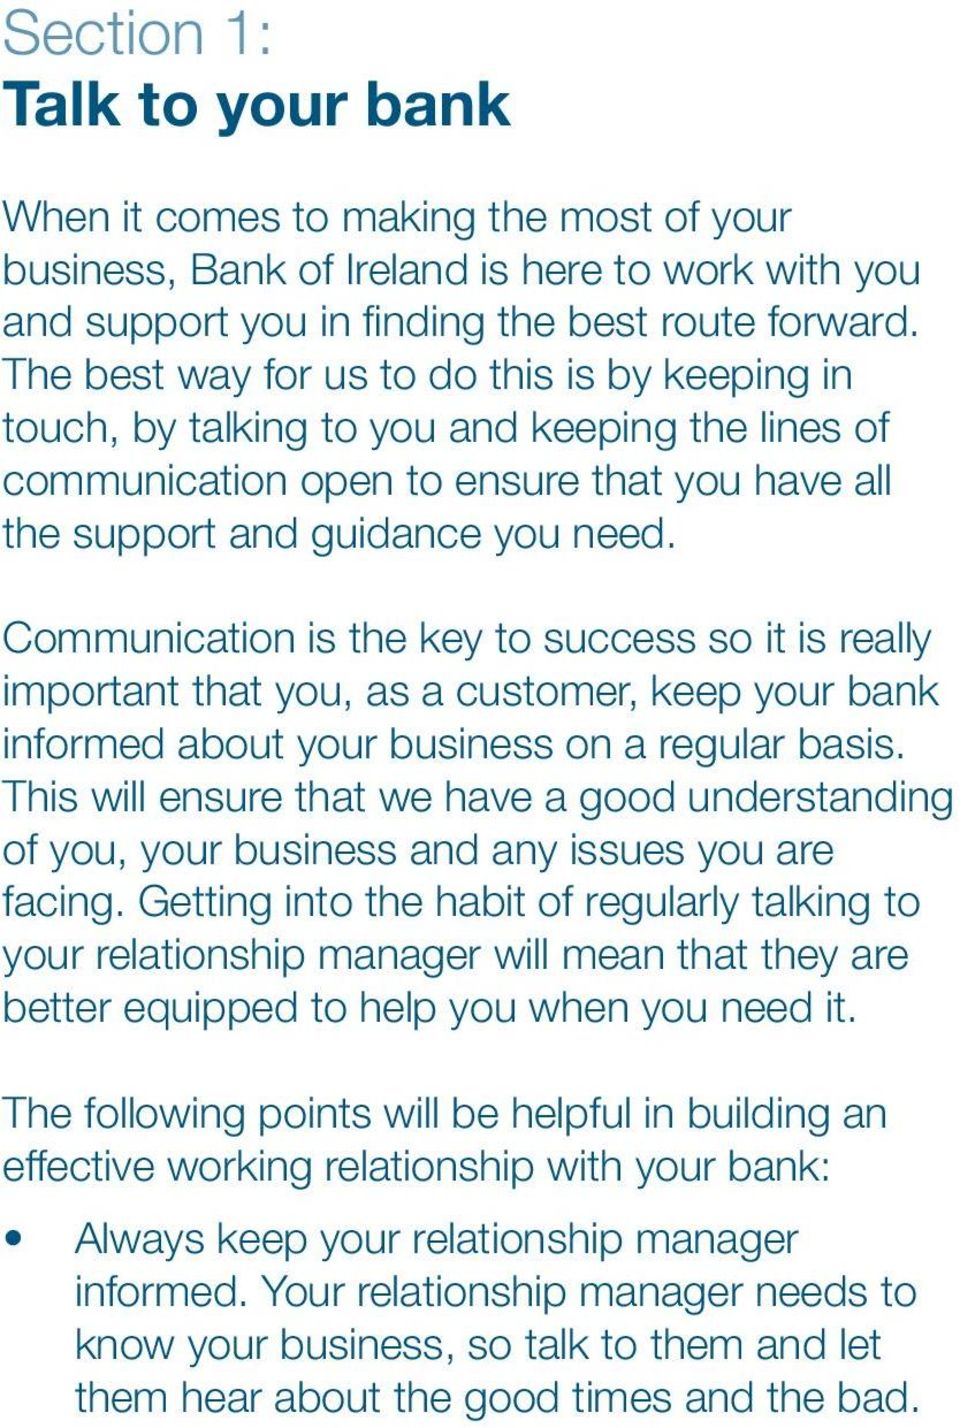 Communication is the key to success so it is really important that you, as a customer, keep your bank informed about your business on a regular basis.